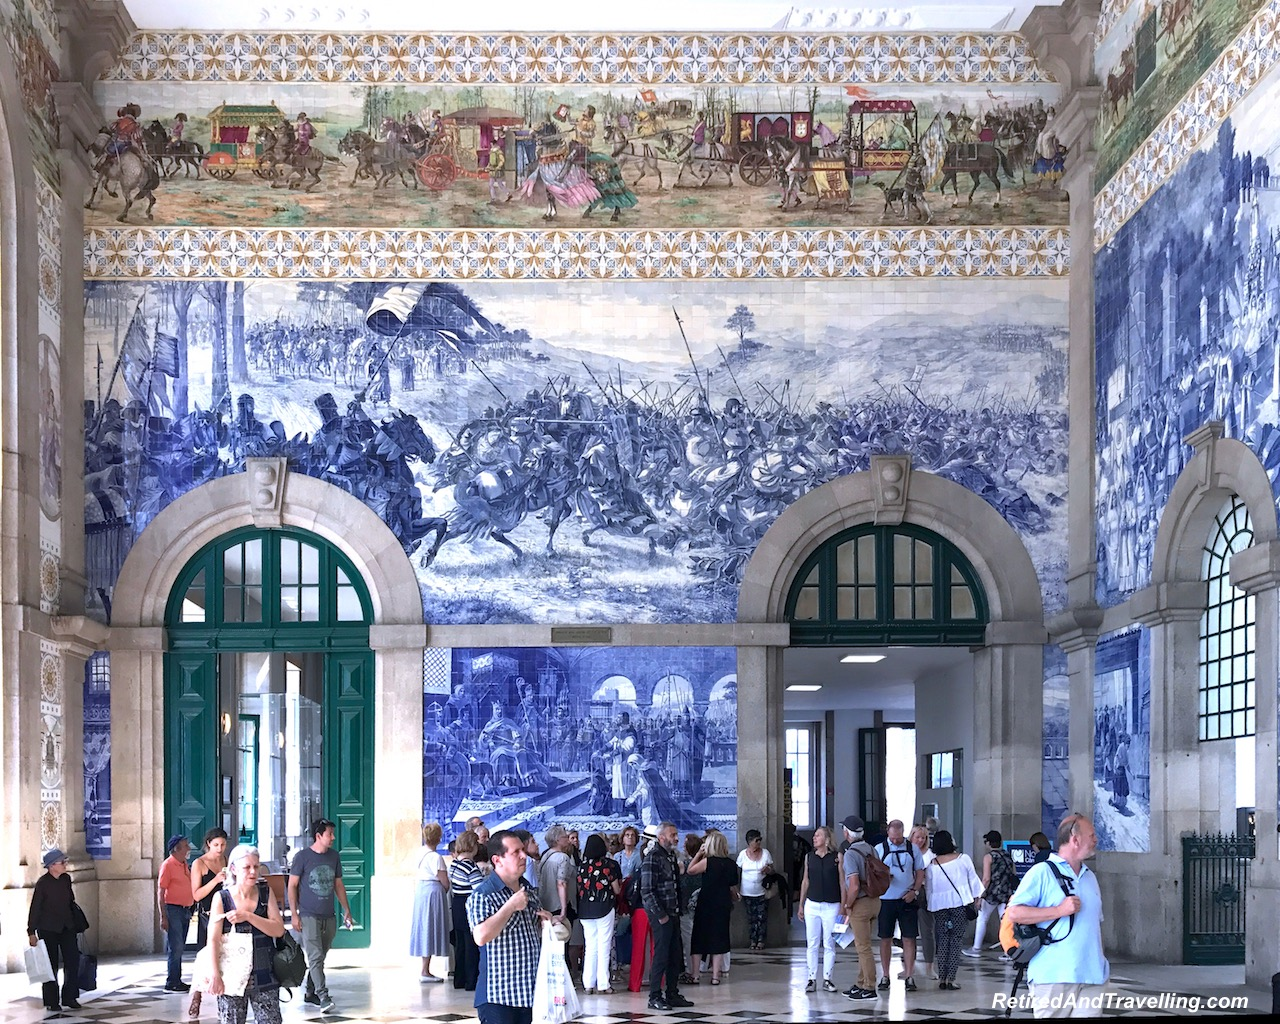 Train Station Tile Artistry Porto Portugal - 4 Weeks In Portugal.jpg